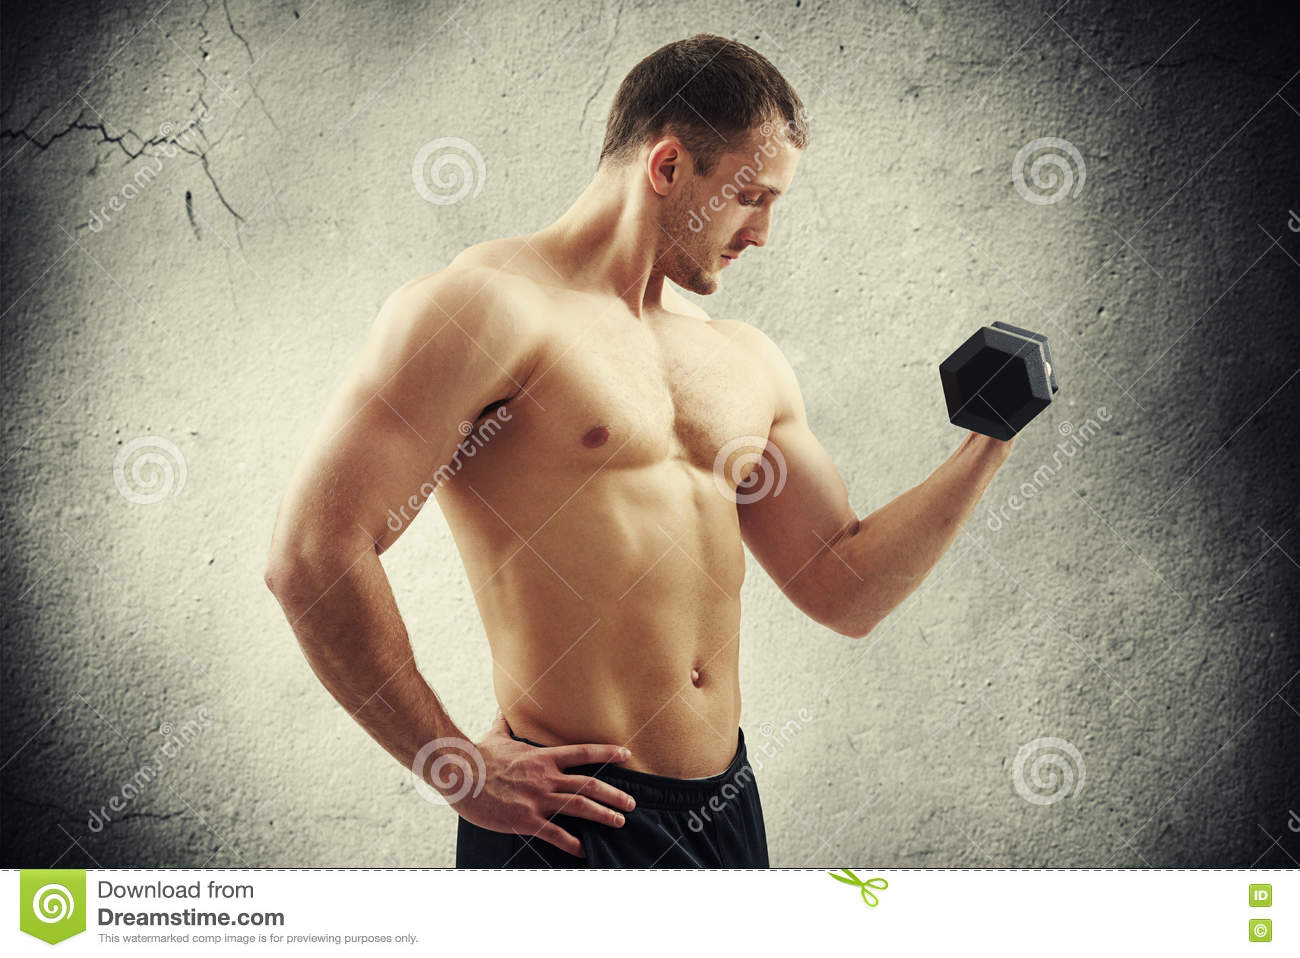 Man with dumbbell flexing biceps over cracked wall